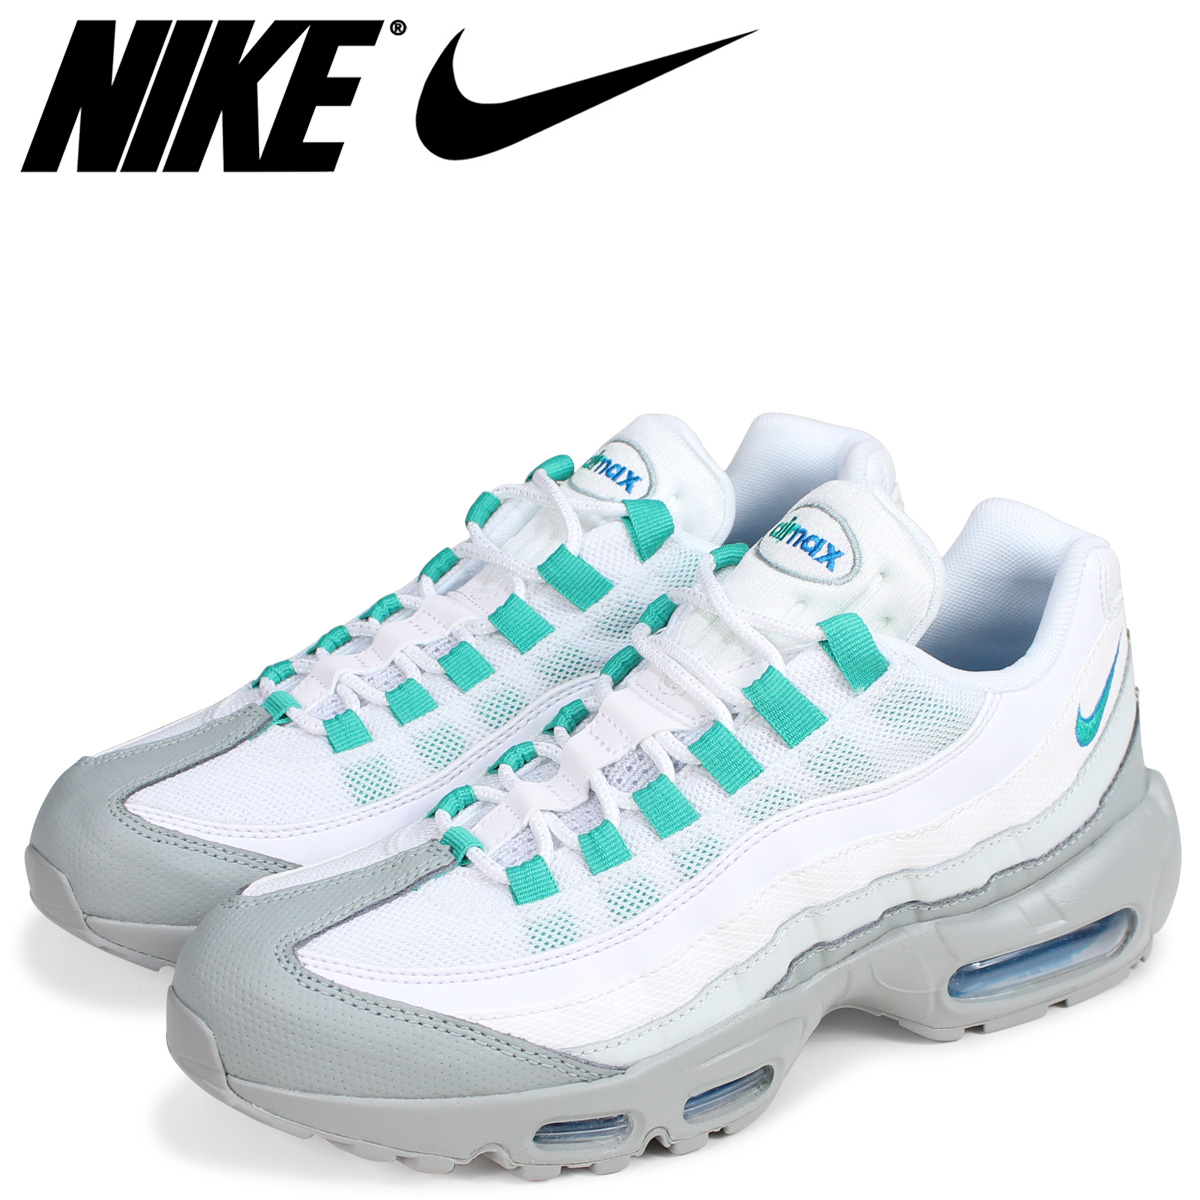 lowest price 05179 6ff57 NIKE Kie Ney AMAX 95 essential sneakers men AIR MAX 95 ESSENTIAL  749,766-032 light ...